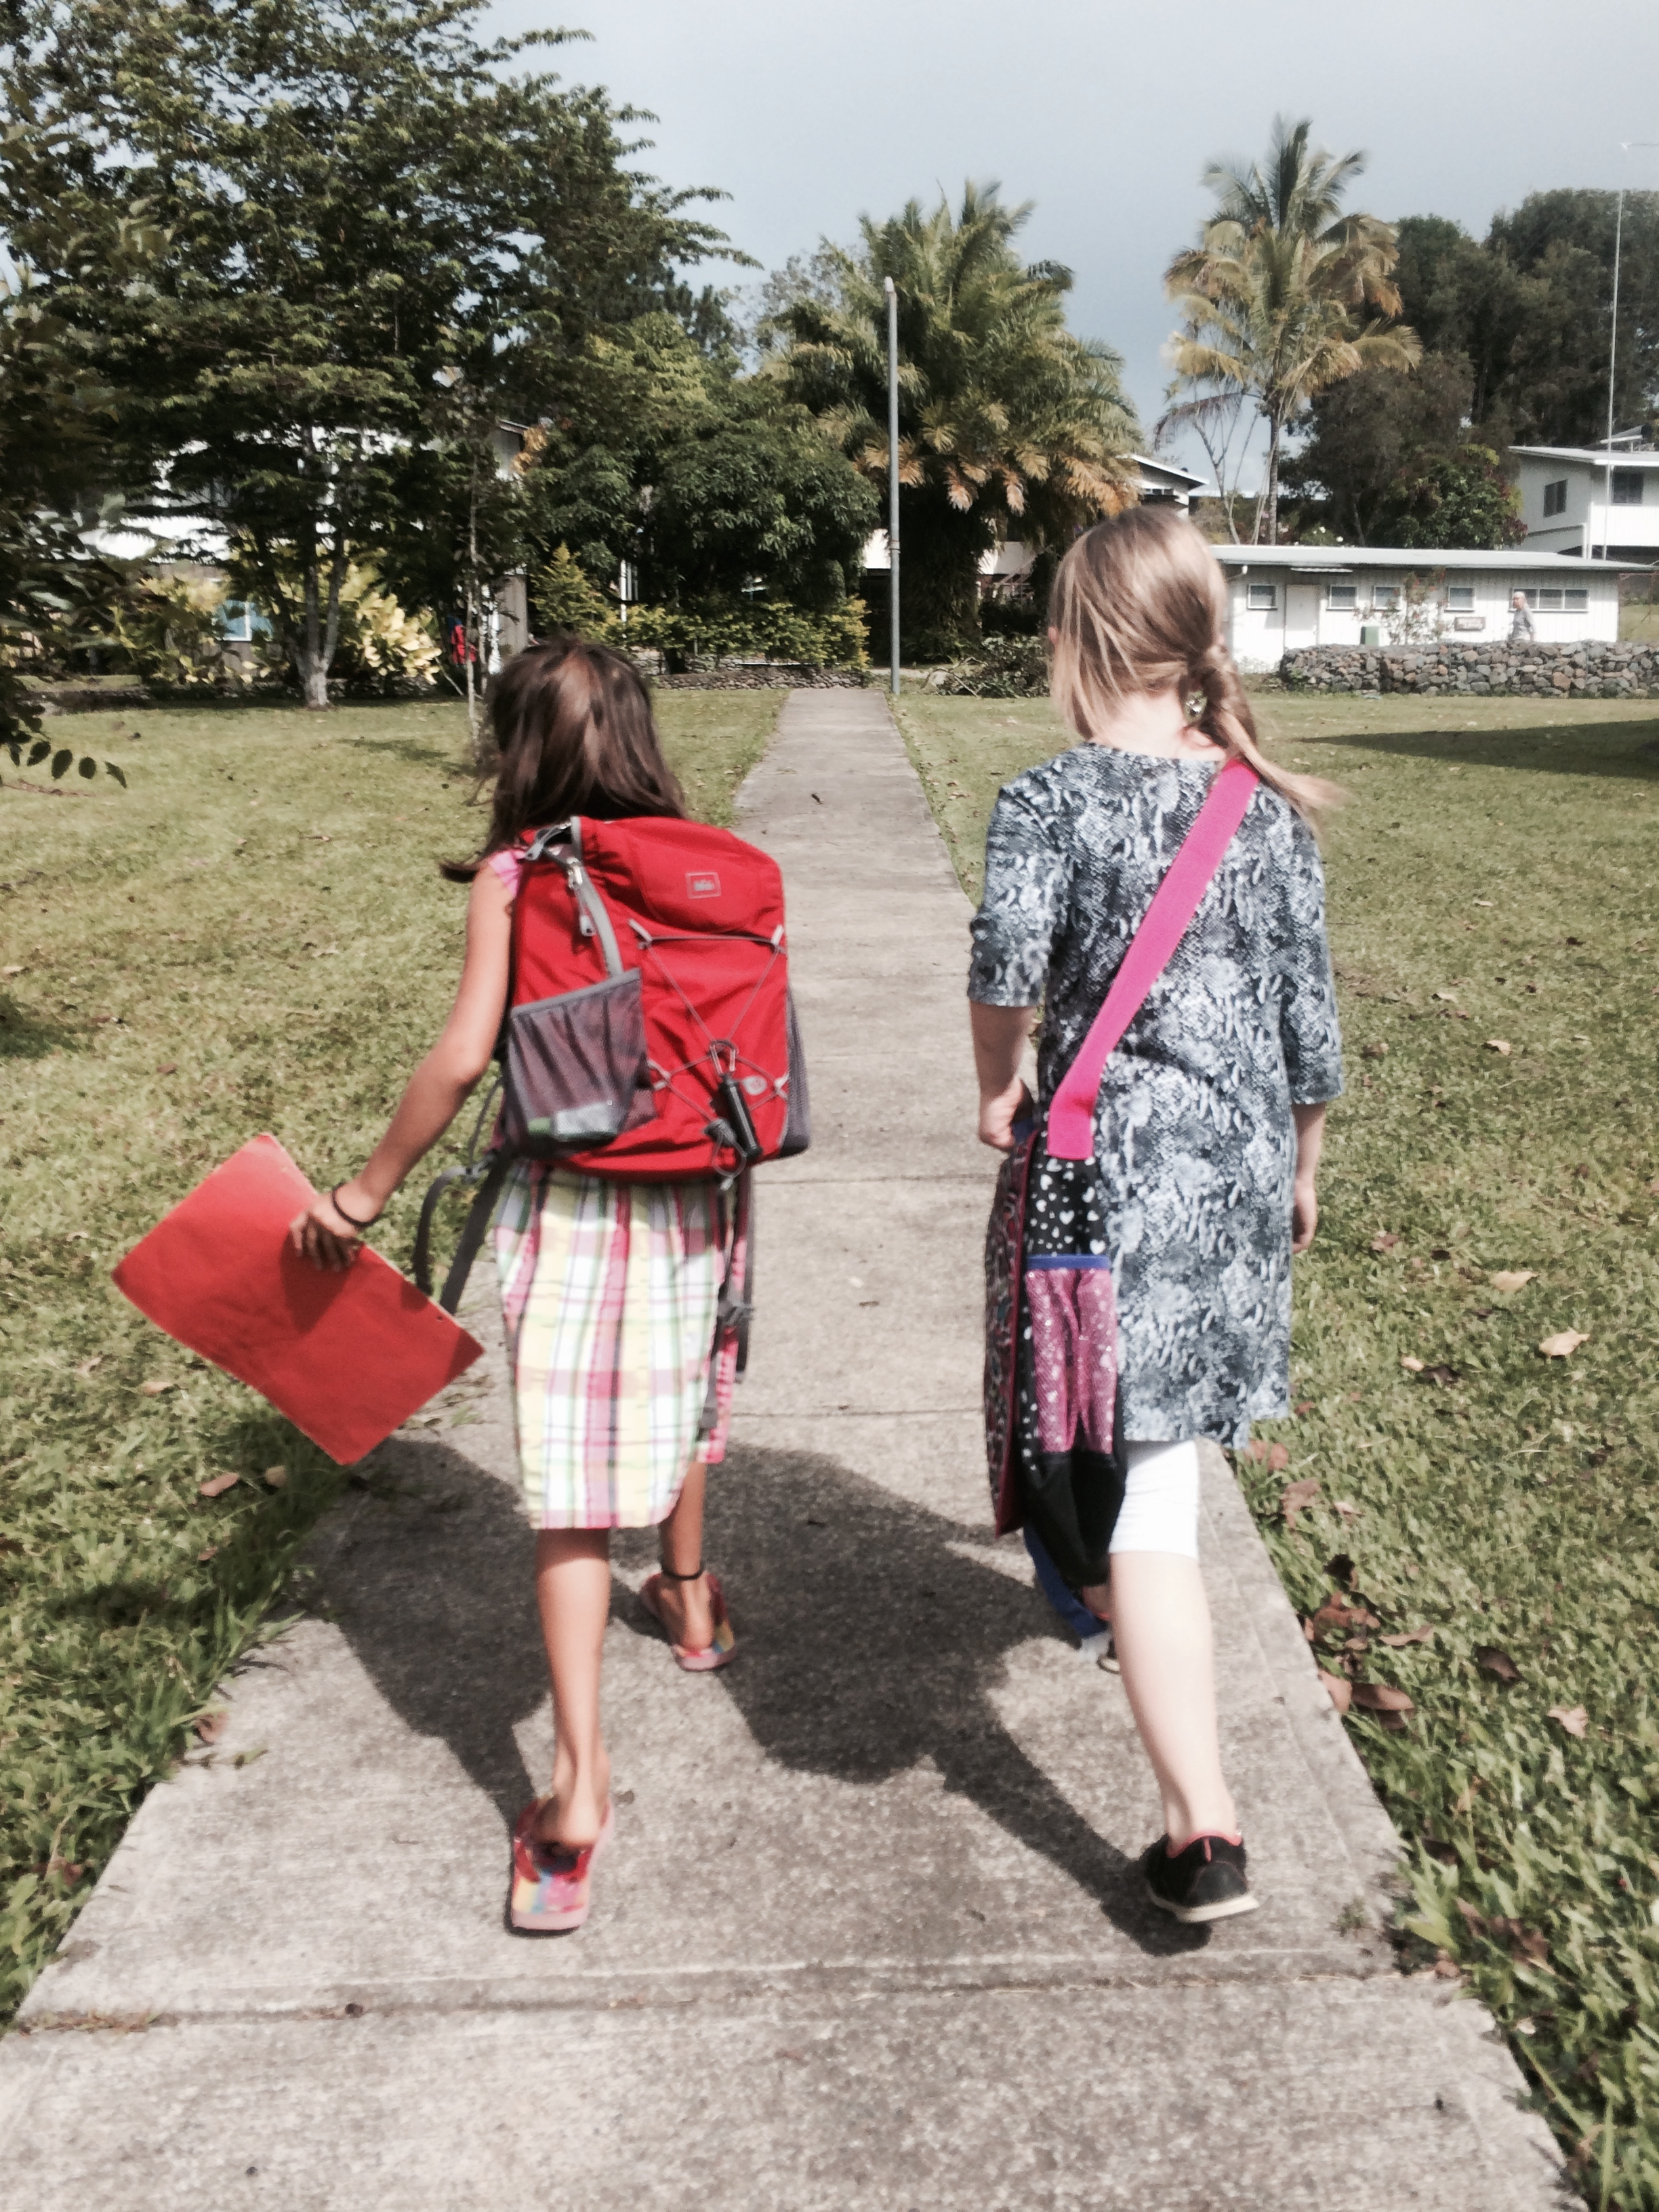 Walking home from school with one of her new friends/classmates (Small world - we know this little girl's grandparents in the midwest!)